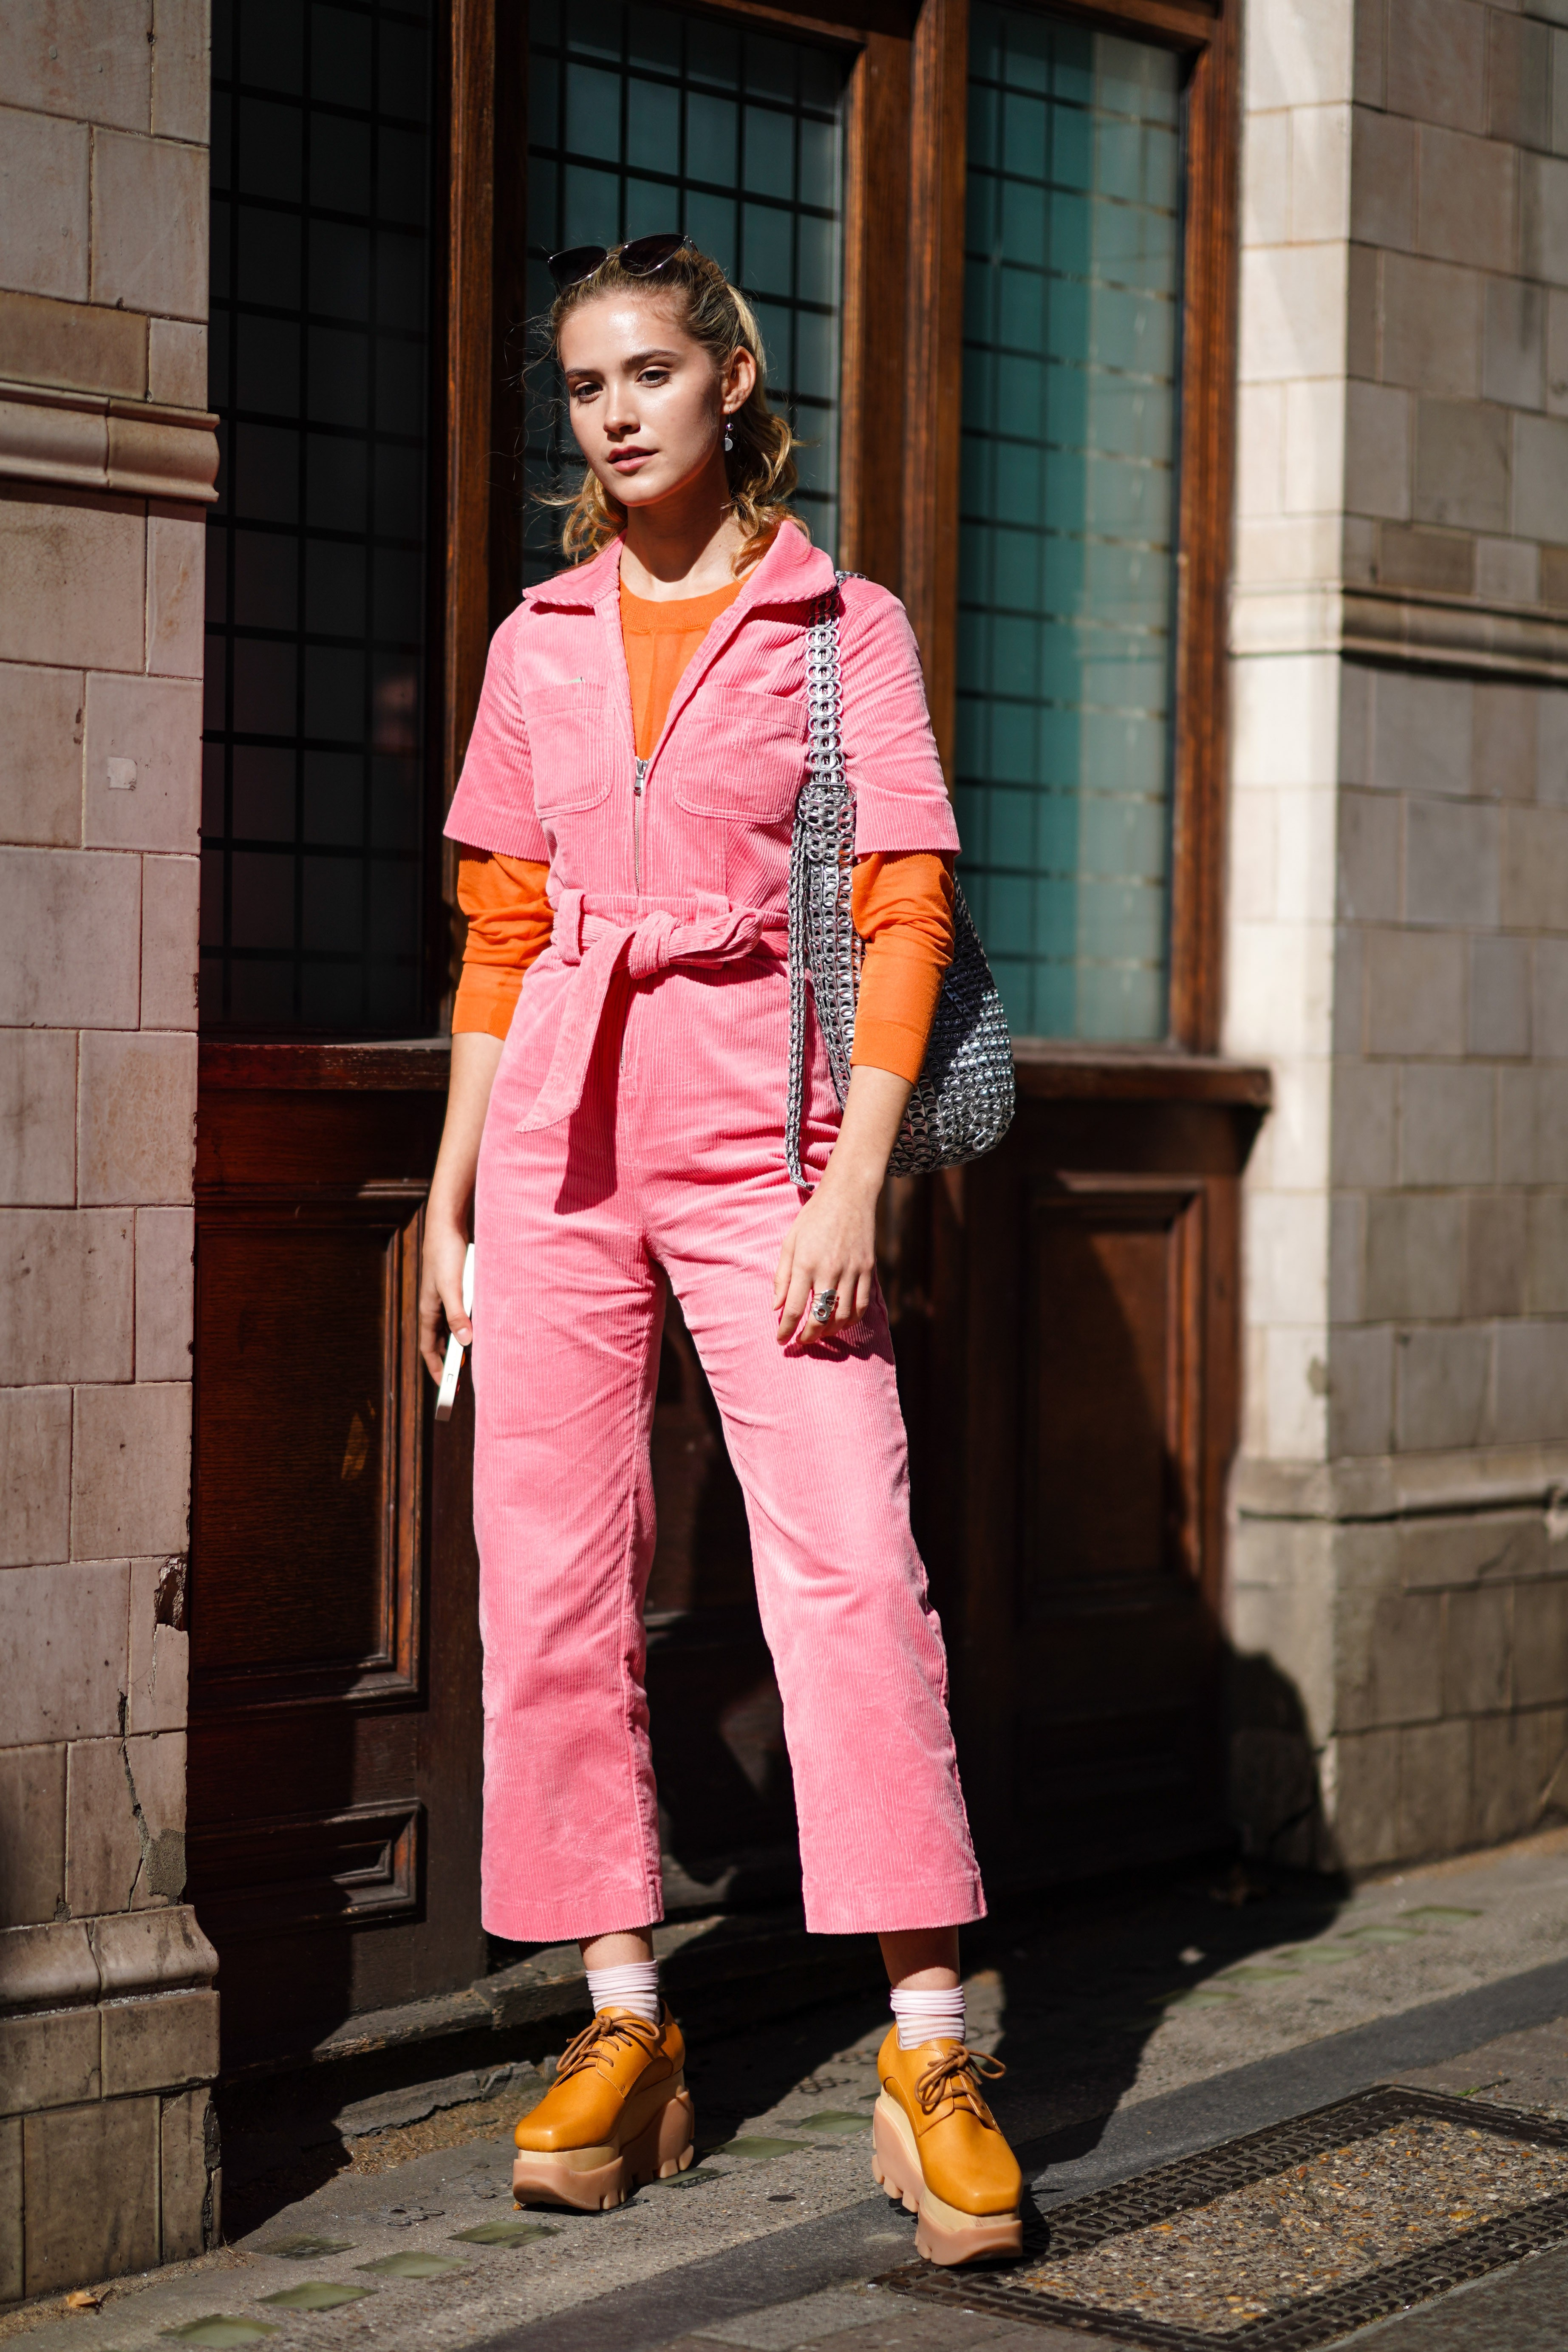 LONDON, ENGLAND - SEPTEMBER 13: Maddie Close wears a pink corduroy jumpsuit, a knitted belt, a silver metallic bag, an orange top, sunglasses over the head, a ring, brown platform shoes, during London Fashion Week September 2019 on September 13, 2019 in L (Foto: Getty Images)